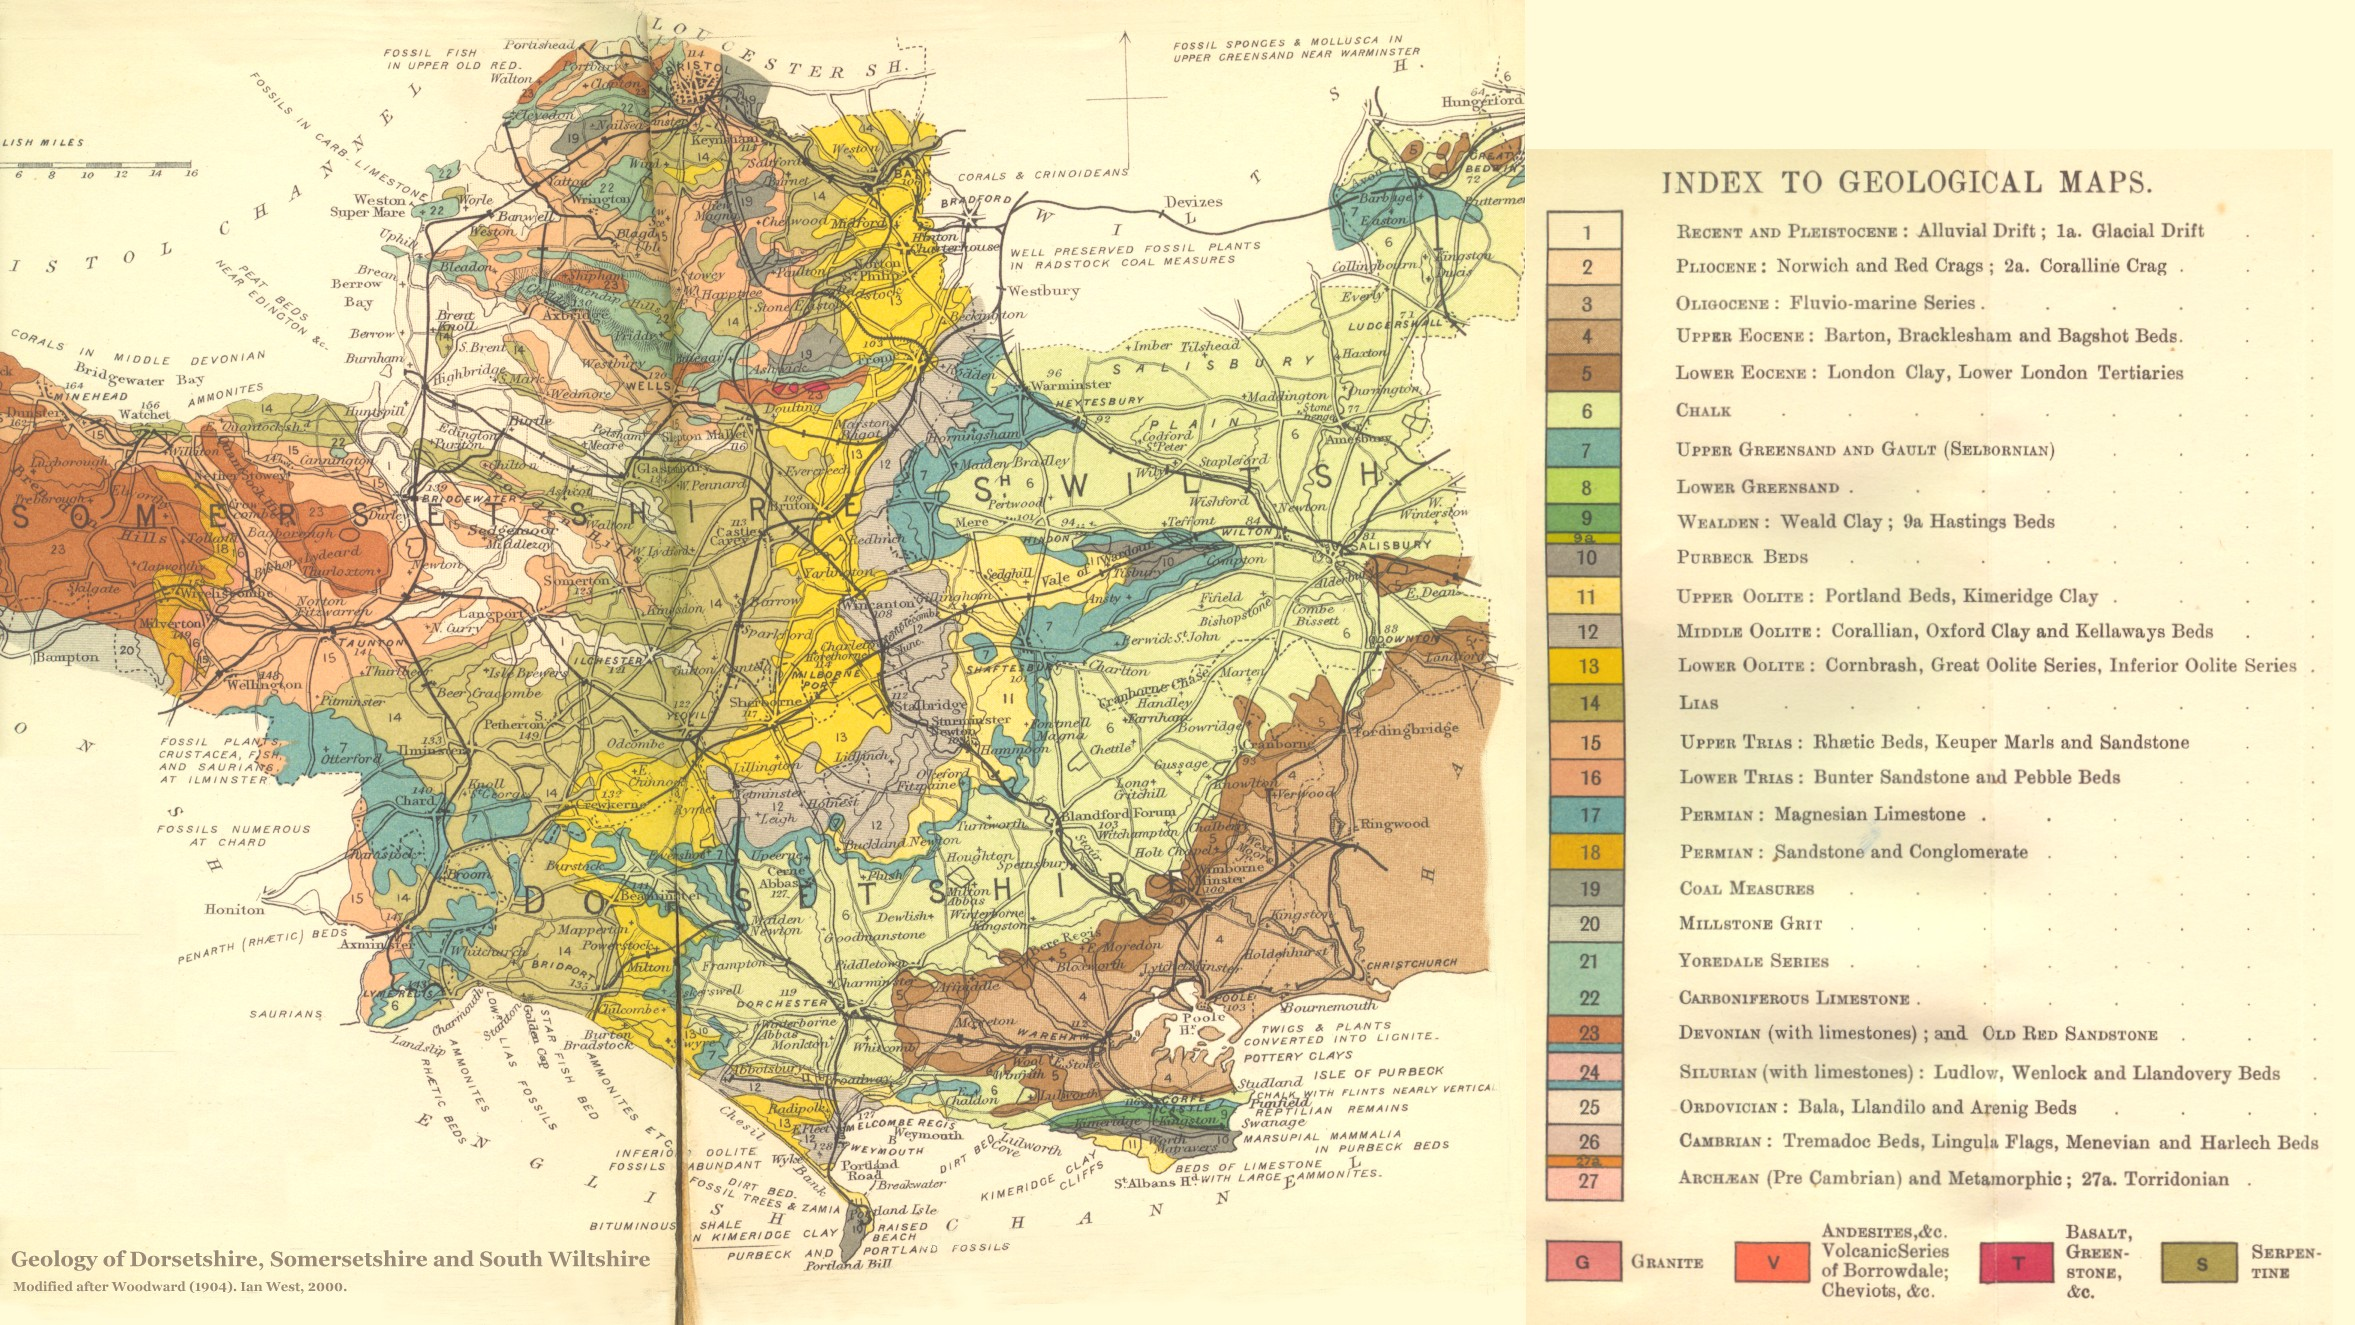 Geology of the Central South Coast of England Introduction and Maps